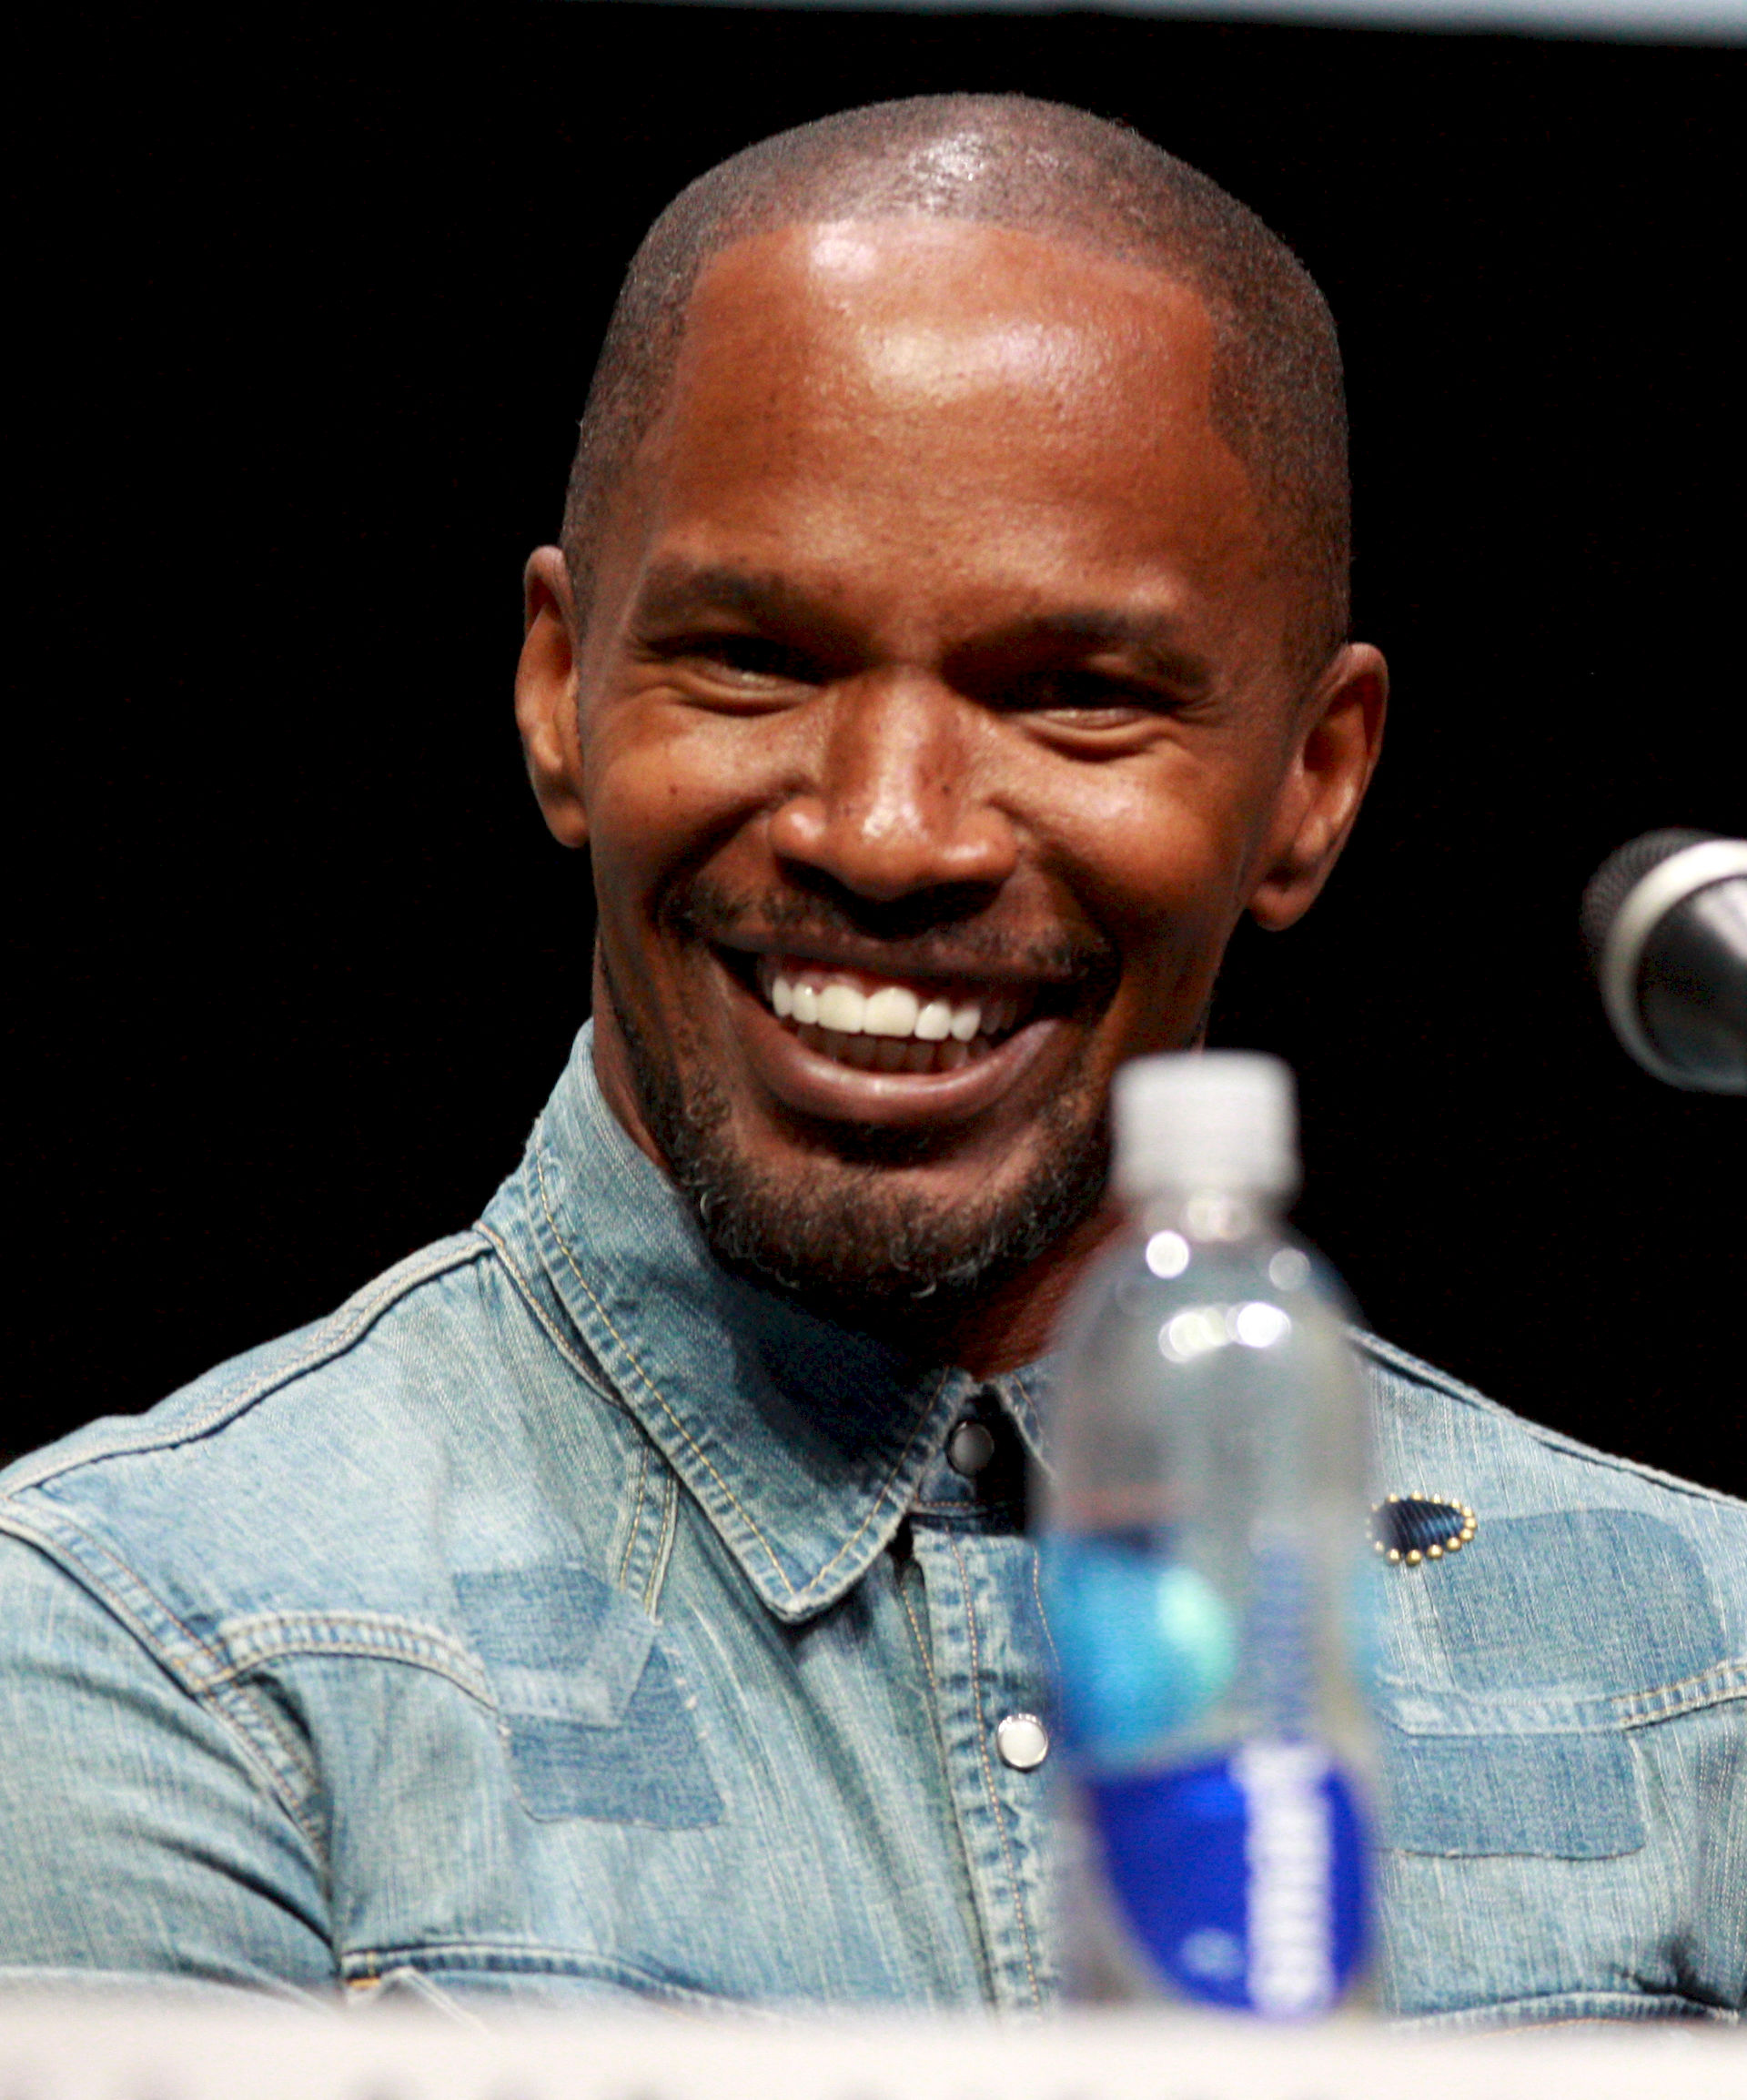 Photo of Jamie Foxx: American actor, stand-up comedian, musician, and talk radio host